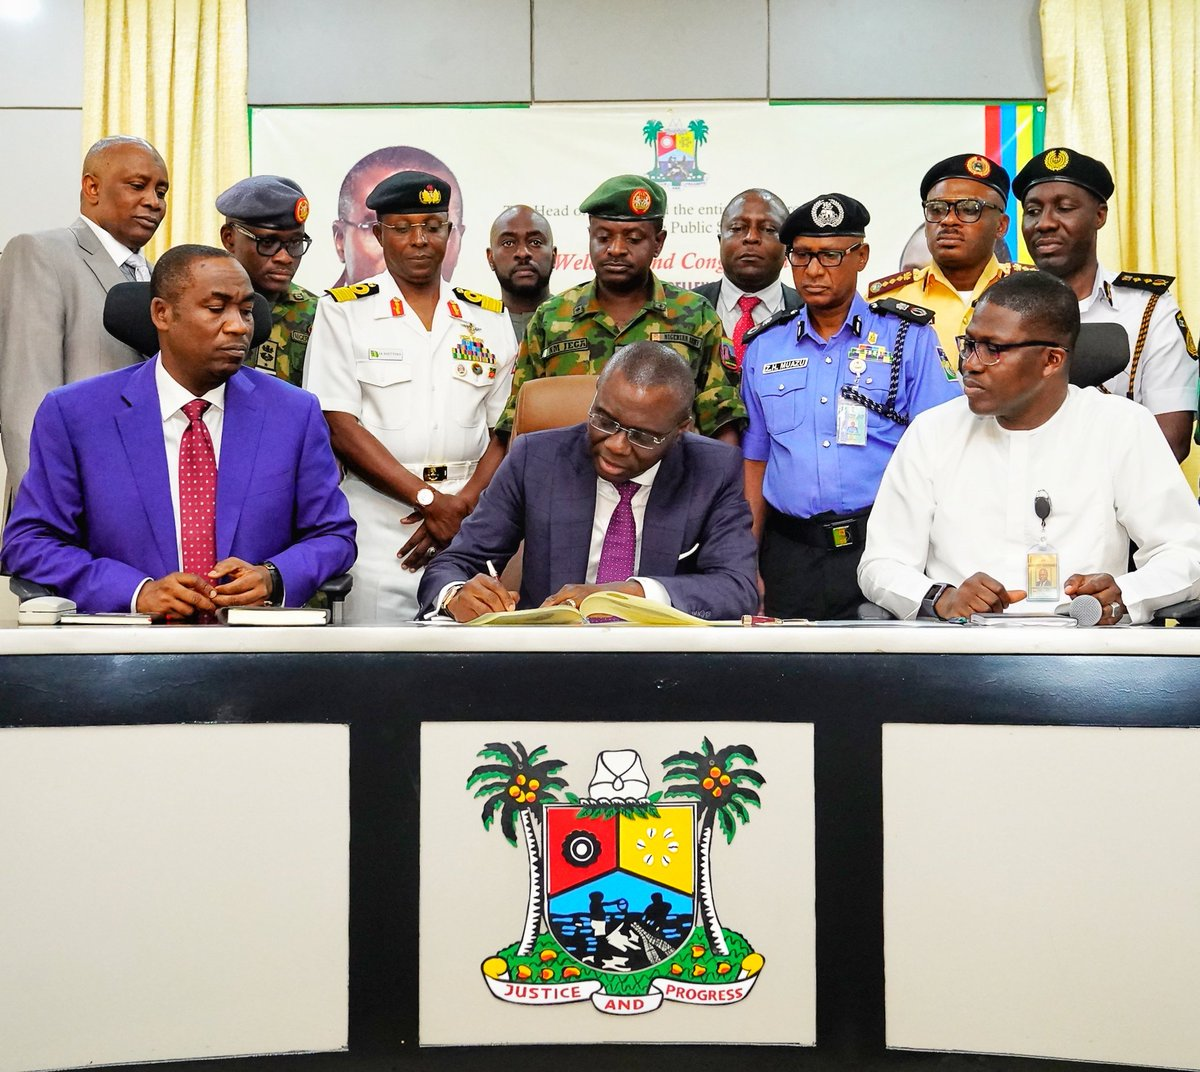 D70d7KDXkAA1pSG - Photos: Lagos State Governor, Babajide Sanwo-olu, Shares Details Of The Two Things He Did On His First Day At Work